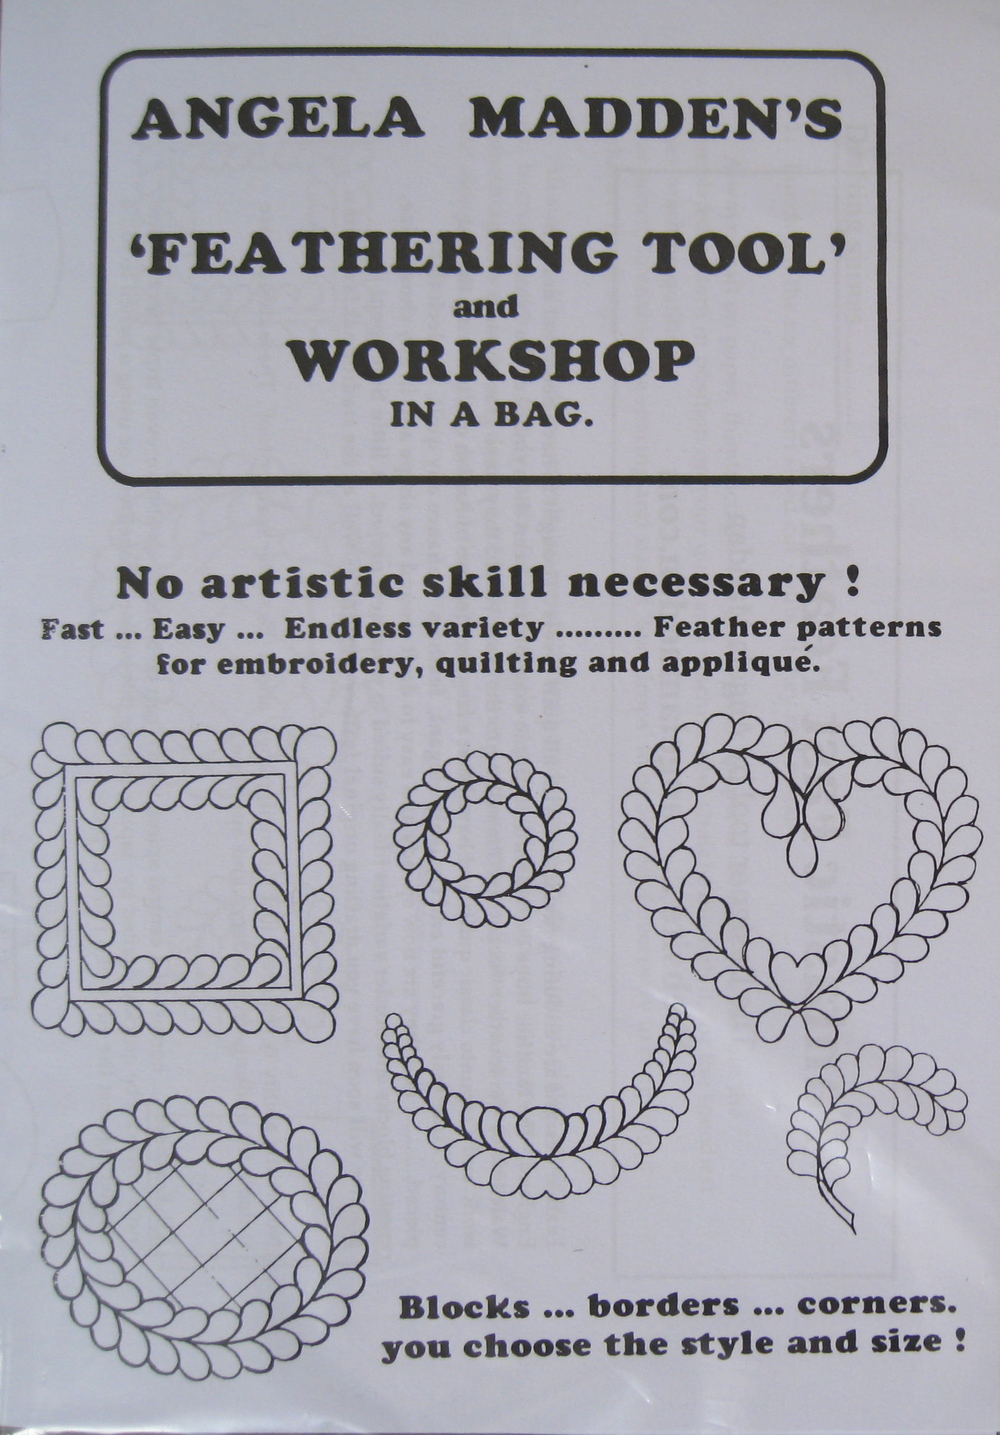 Feather Tool, quilt design template